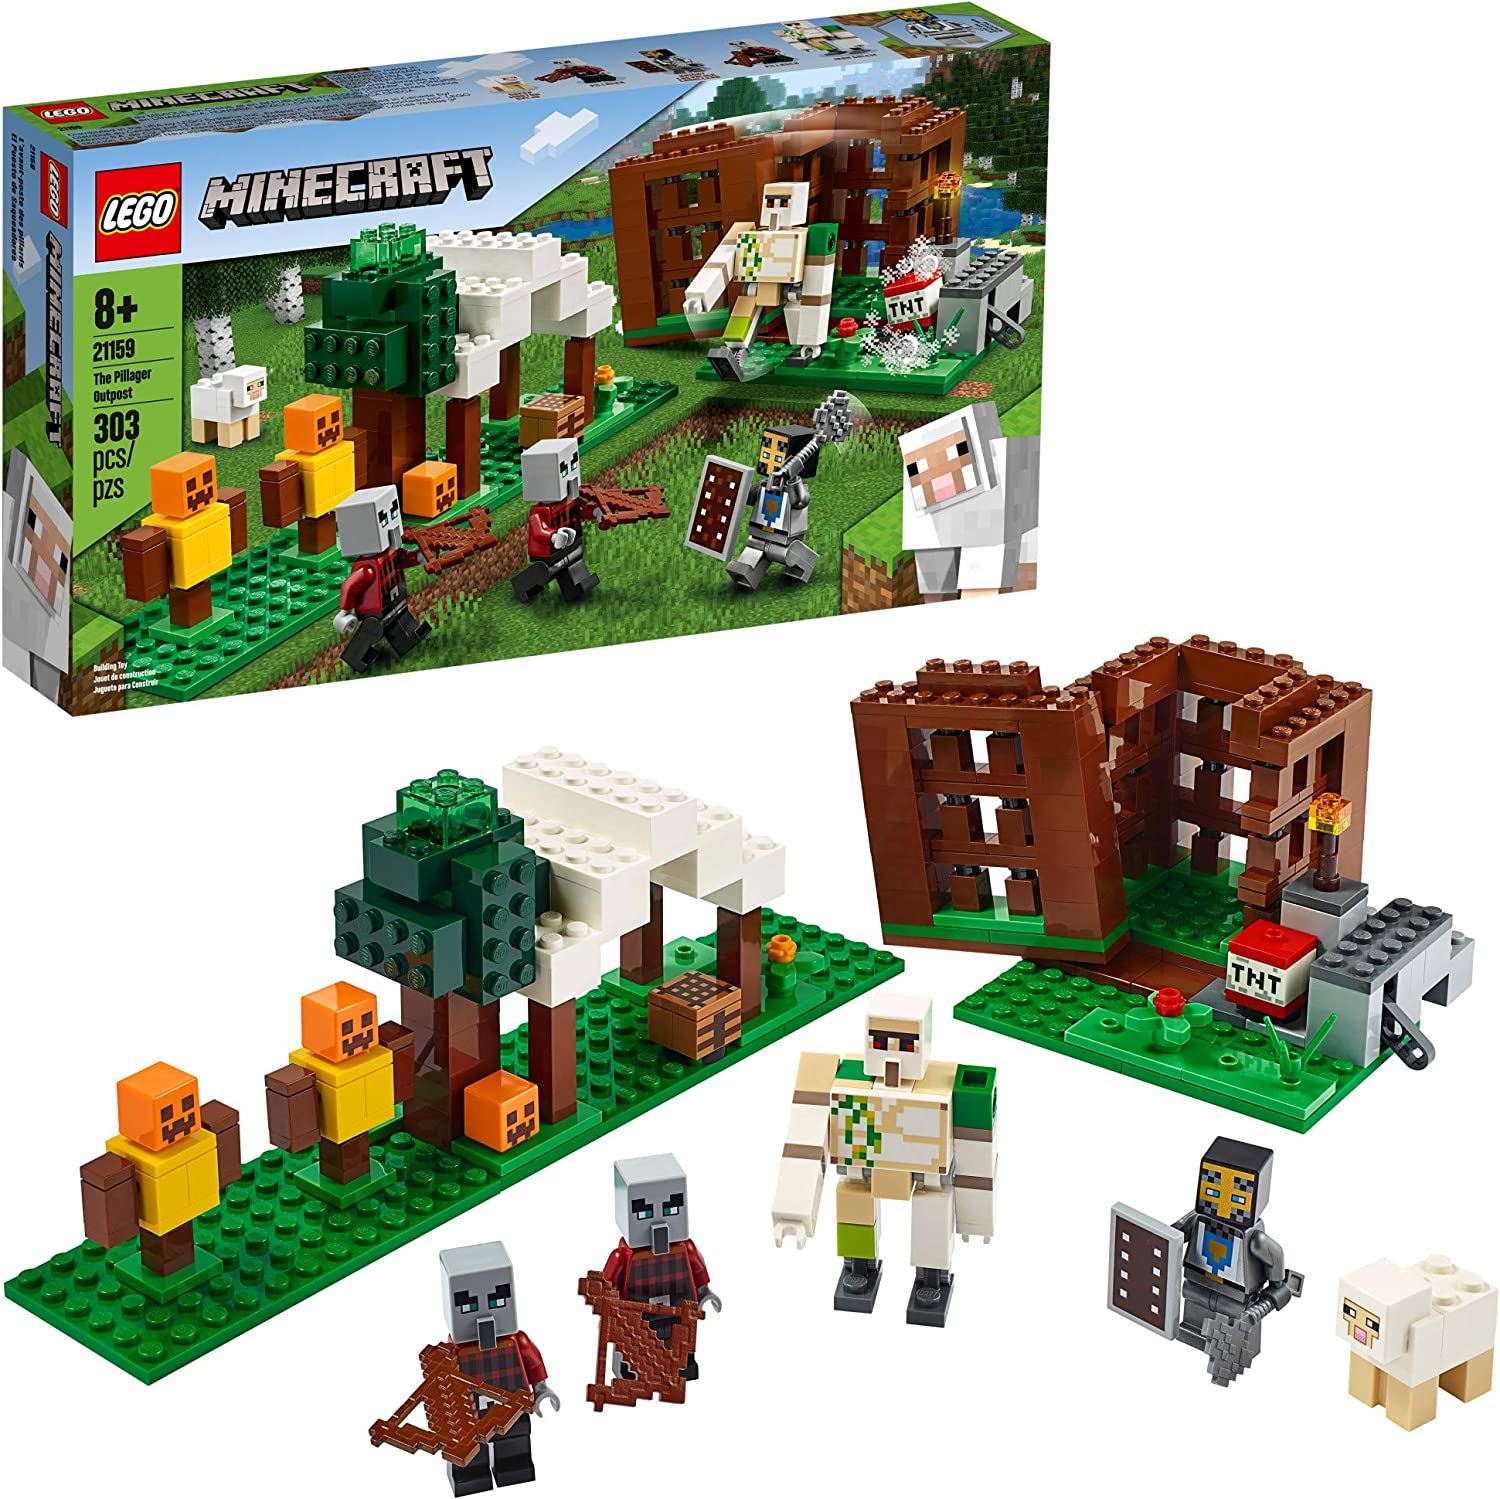 LEGO Minecraft The Pillager Outpost 21159 Awesome Action Figure Brick Building Playset for Kids Minecraft Gift, New 2020 (303 Pieces)